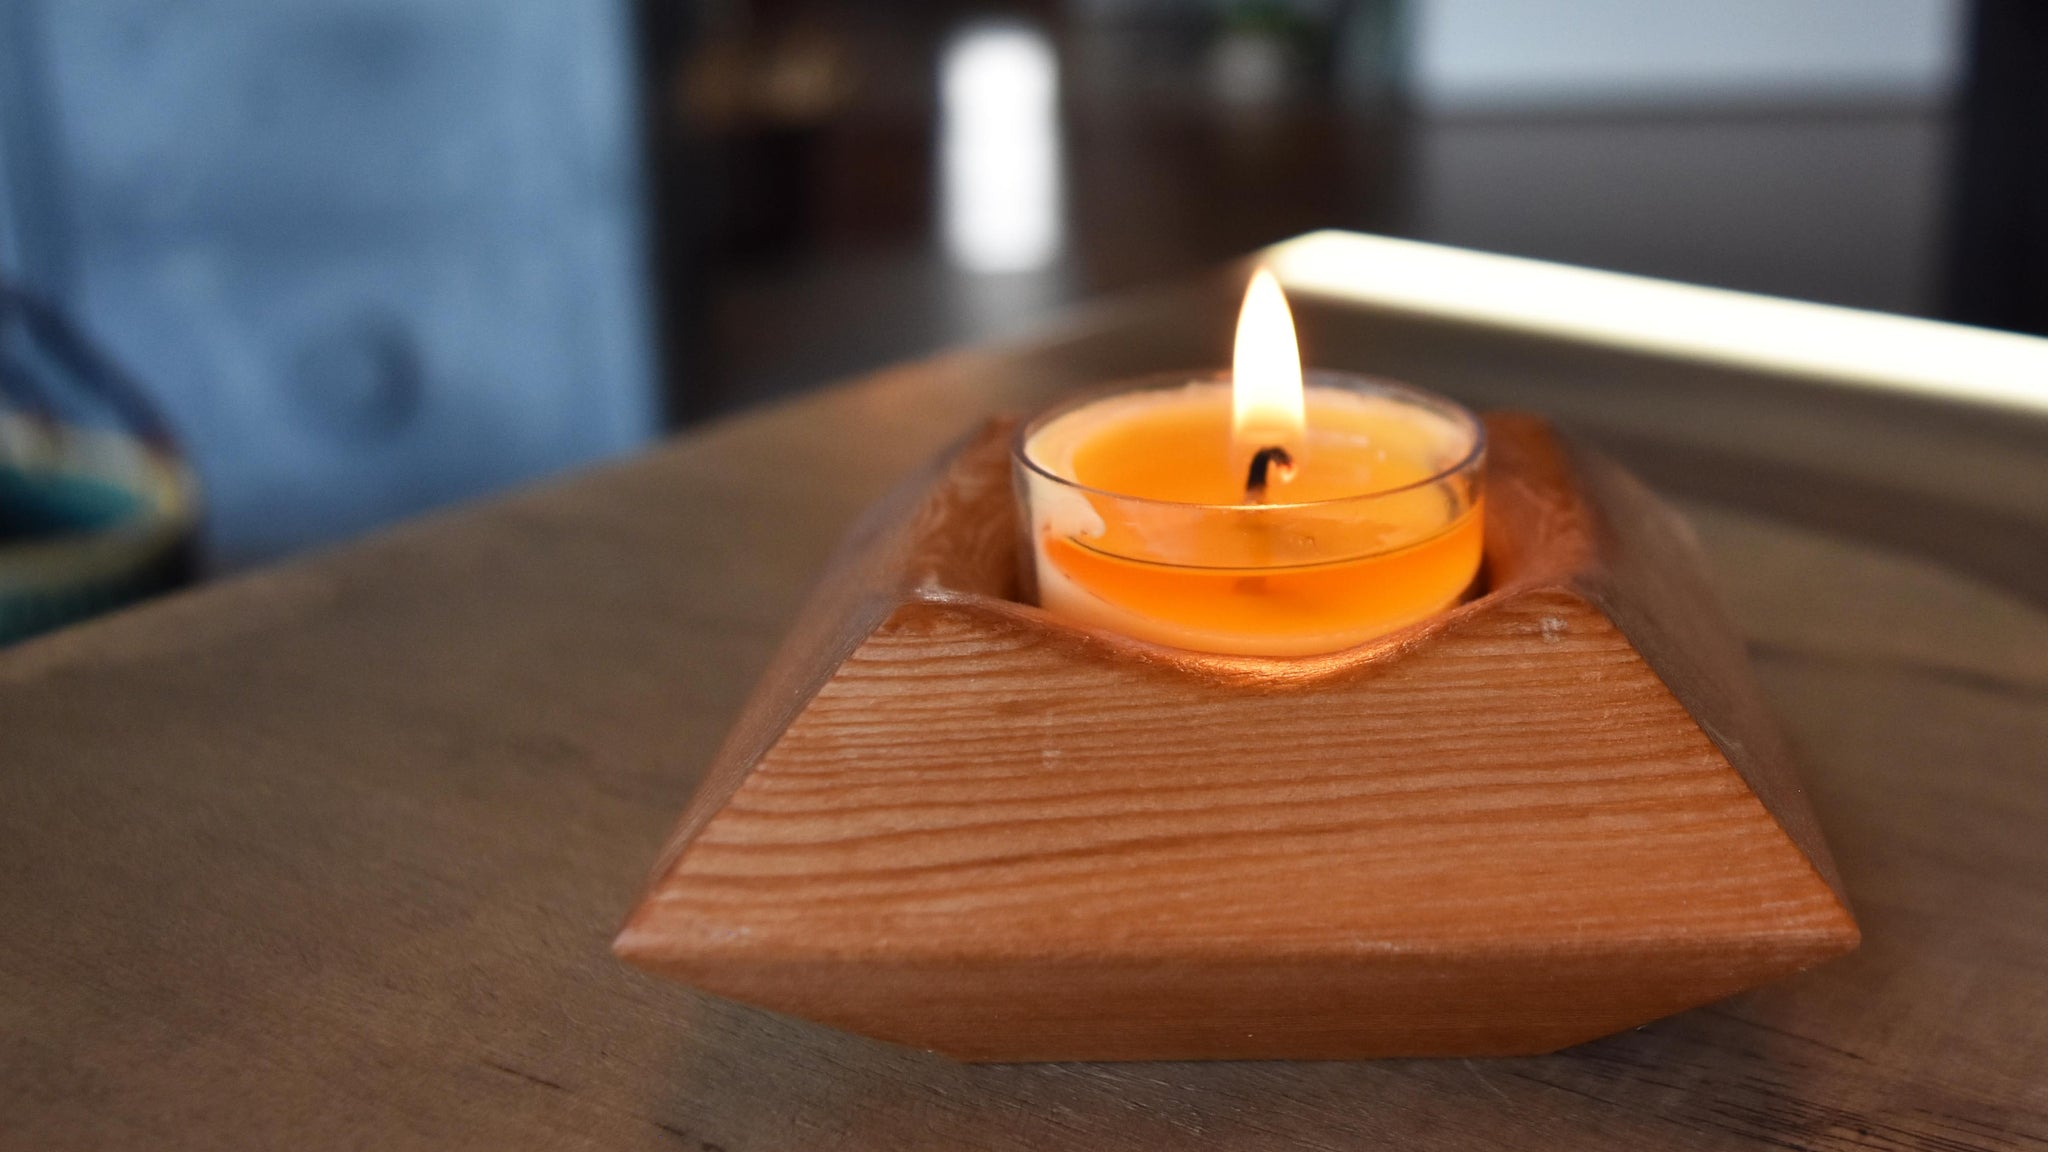 Temperature Affects Candle Burn Time and Wax Consumption